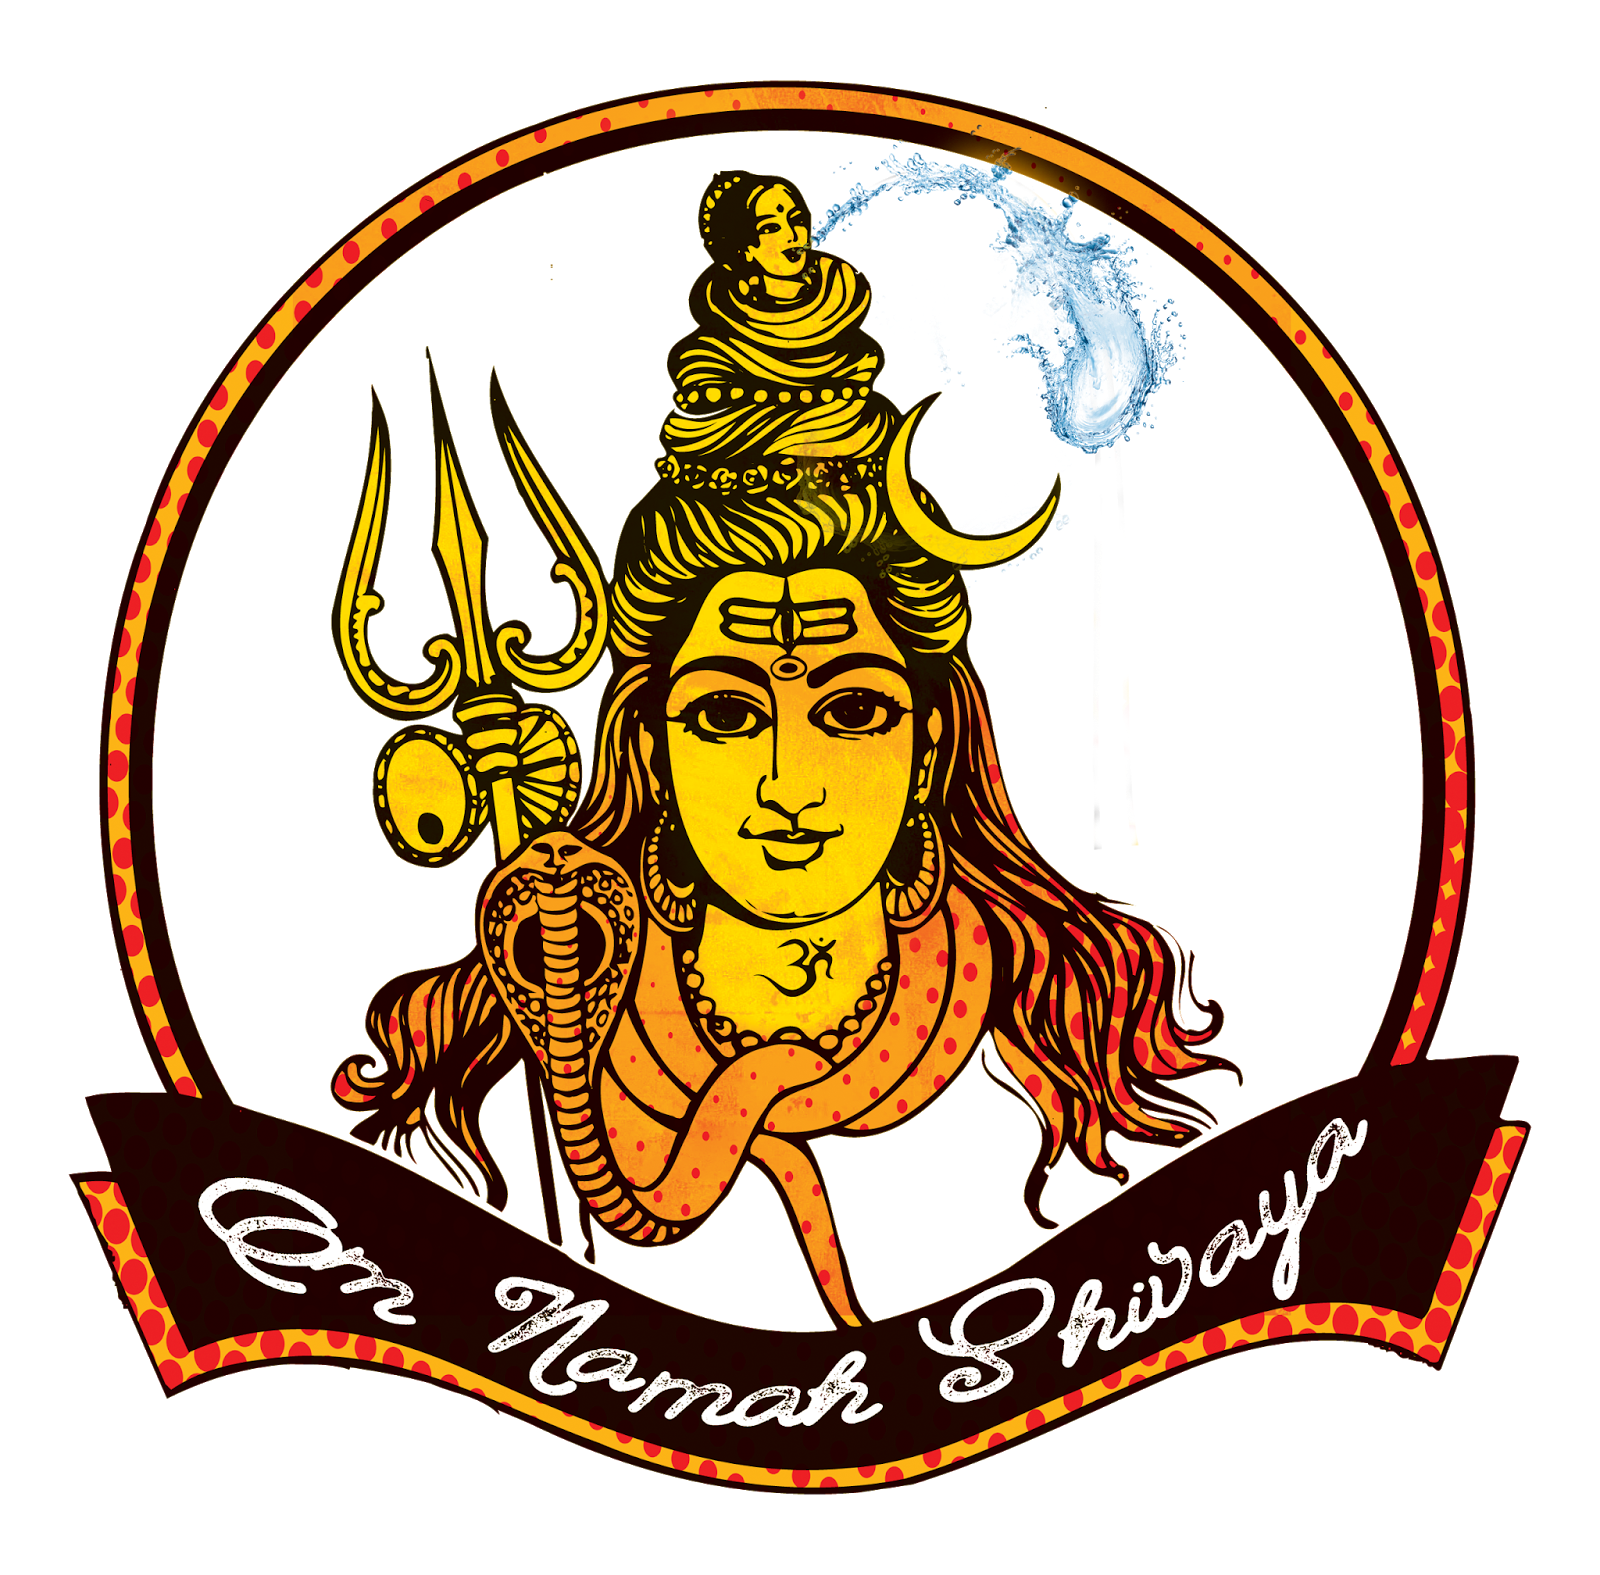 Lord shiva Png Clipart image  - Lord Shiva Clipart